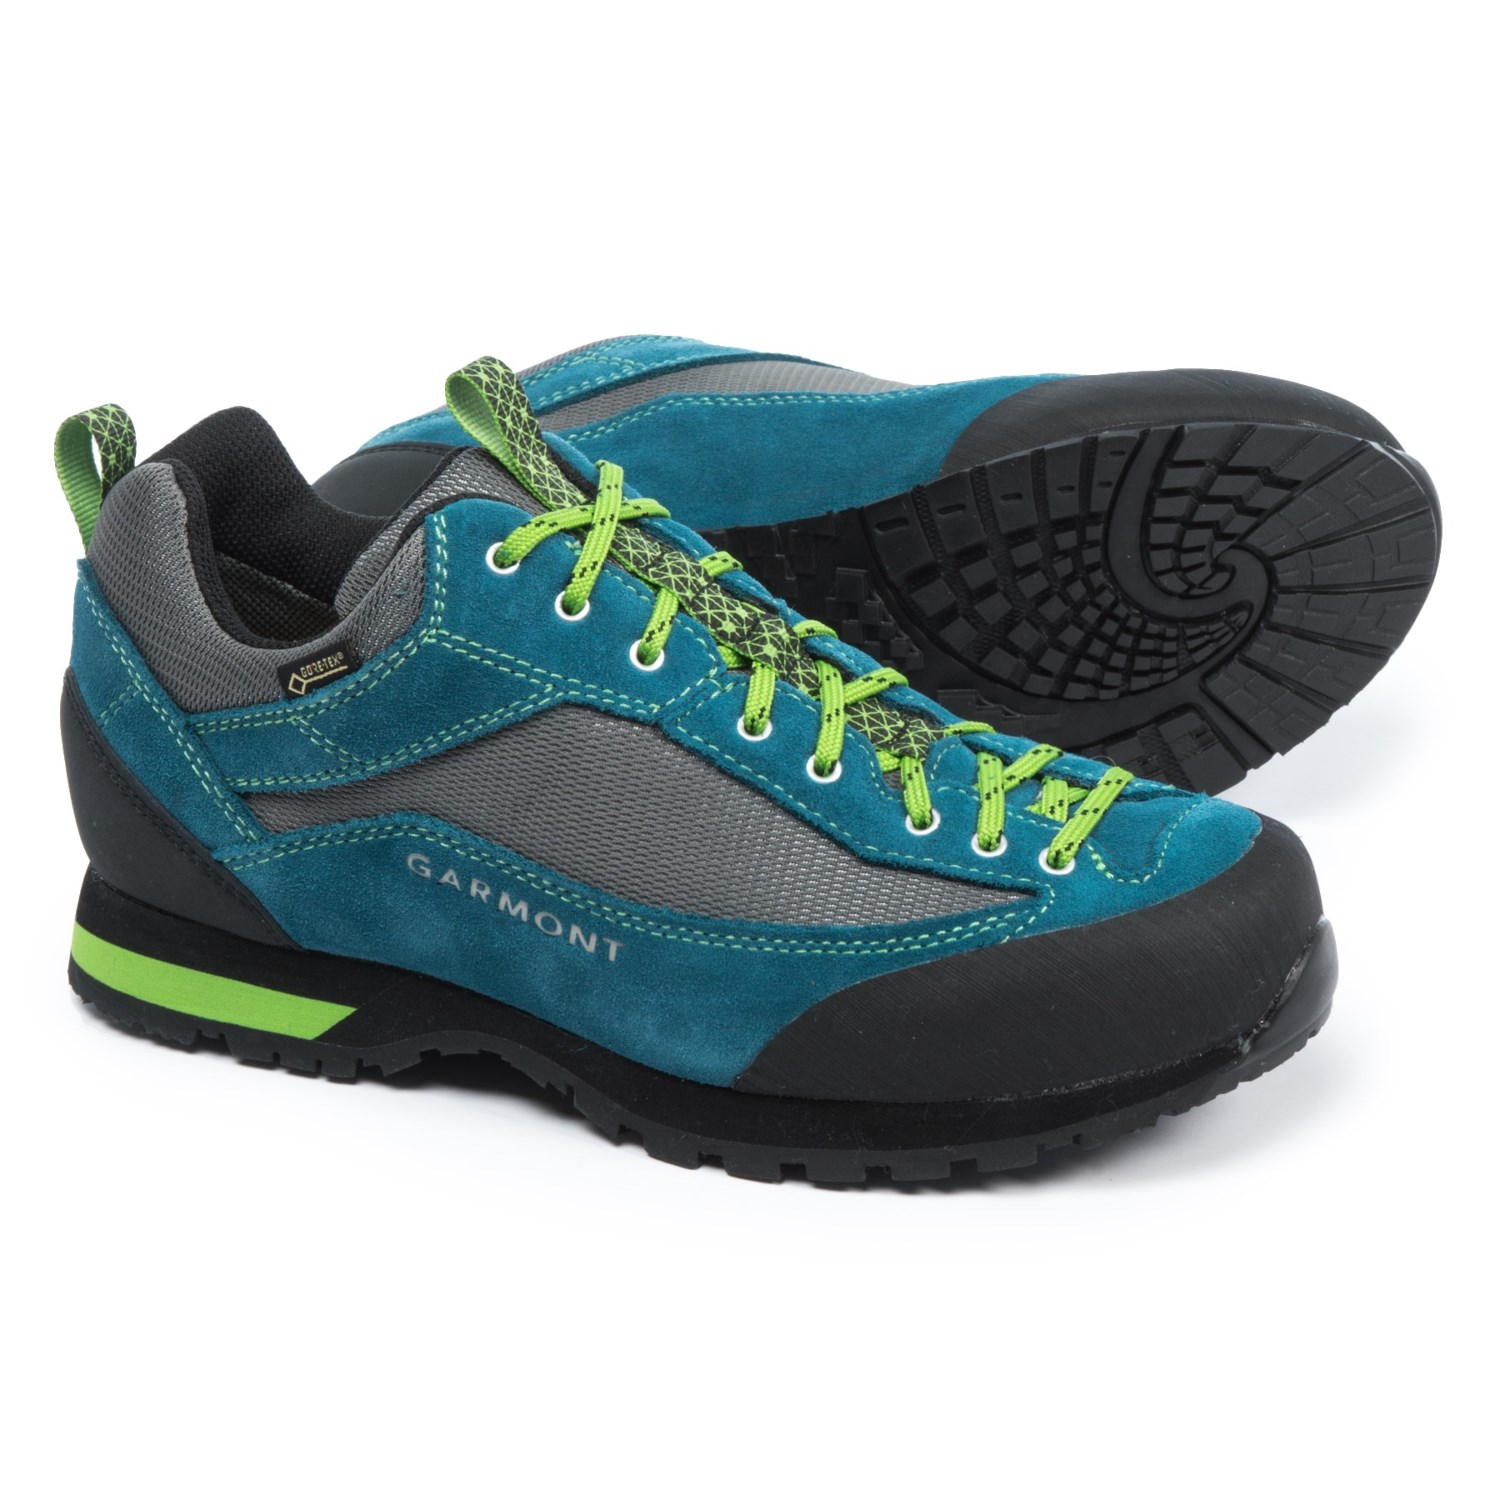 Garmont Sticky Weekend Gore-Tex® Hiking Shoes (For Men) - Save 43% 84deb8d780